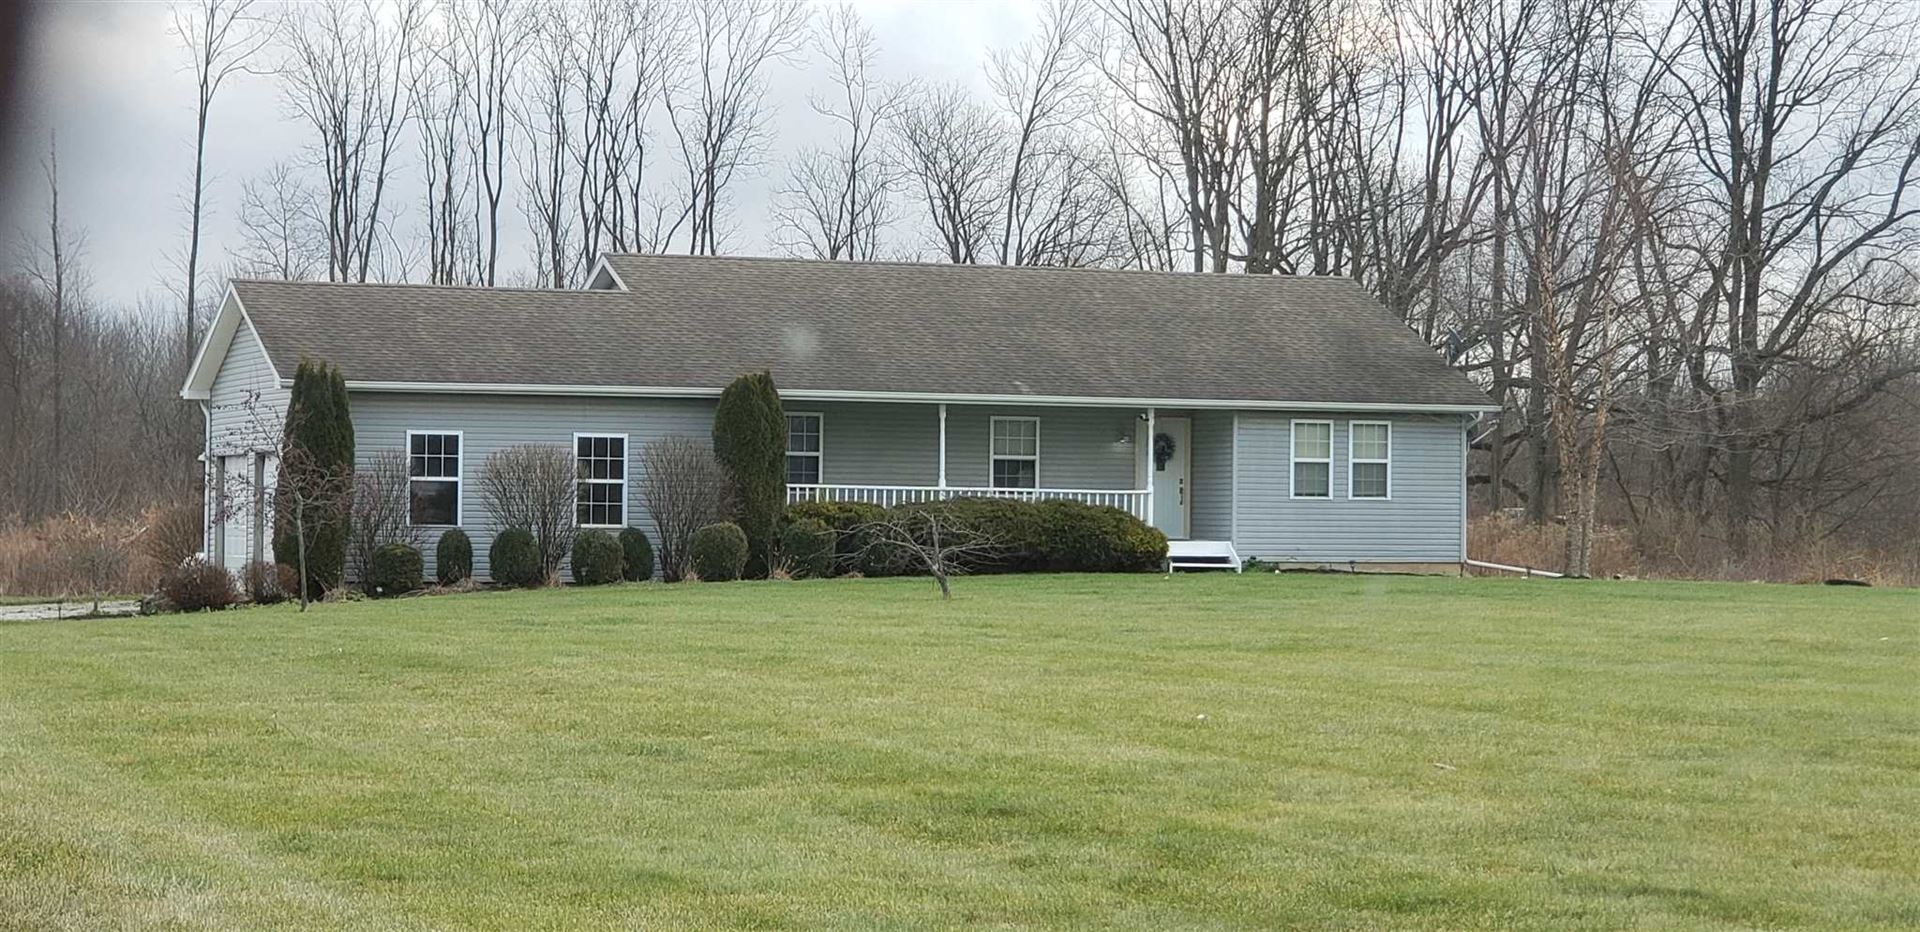 Photo of 71750 County Road 33, Syracuse, IN 46567 (MLS # 202006482)